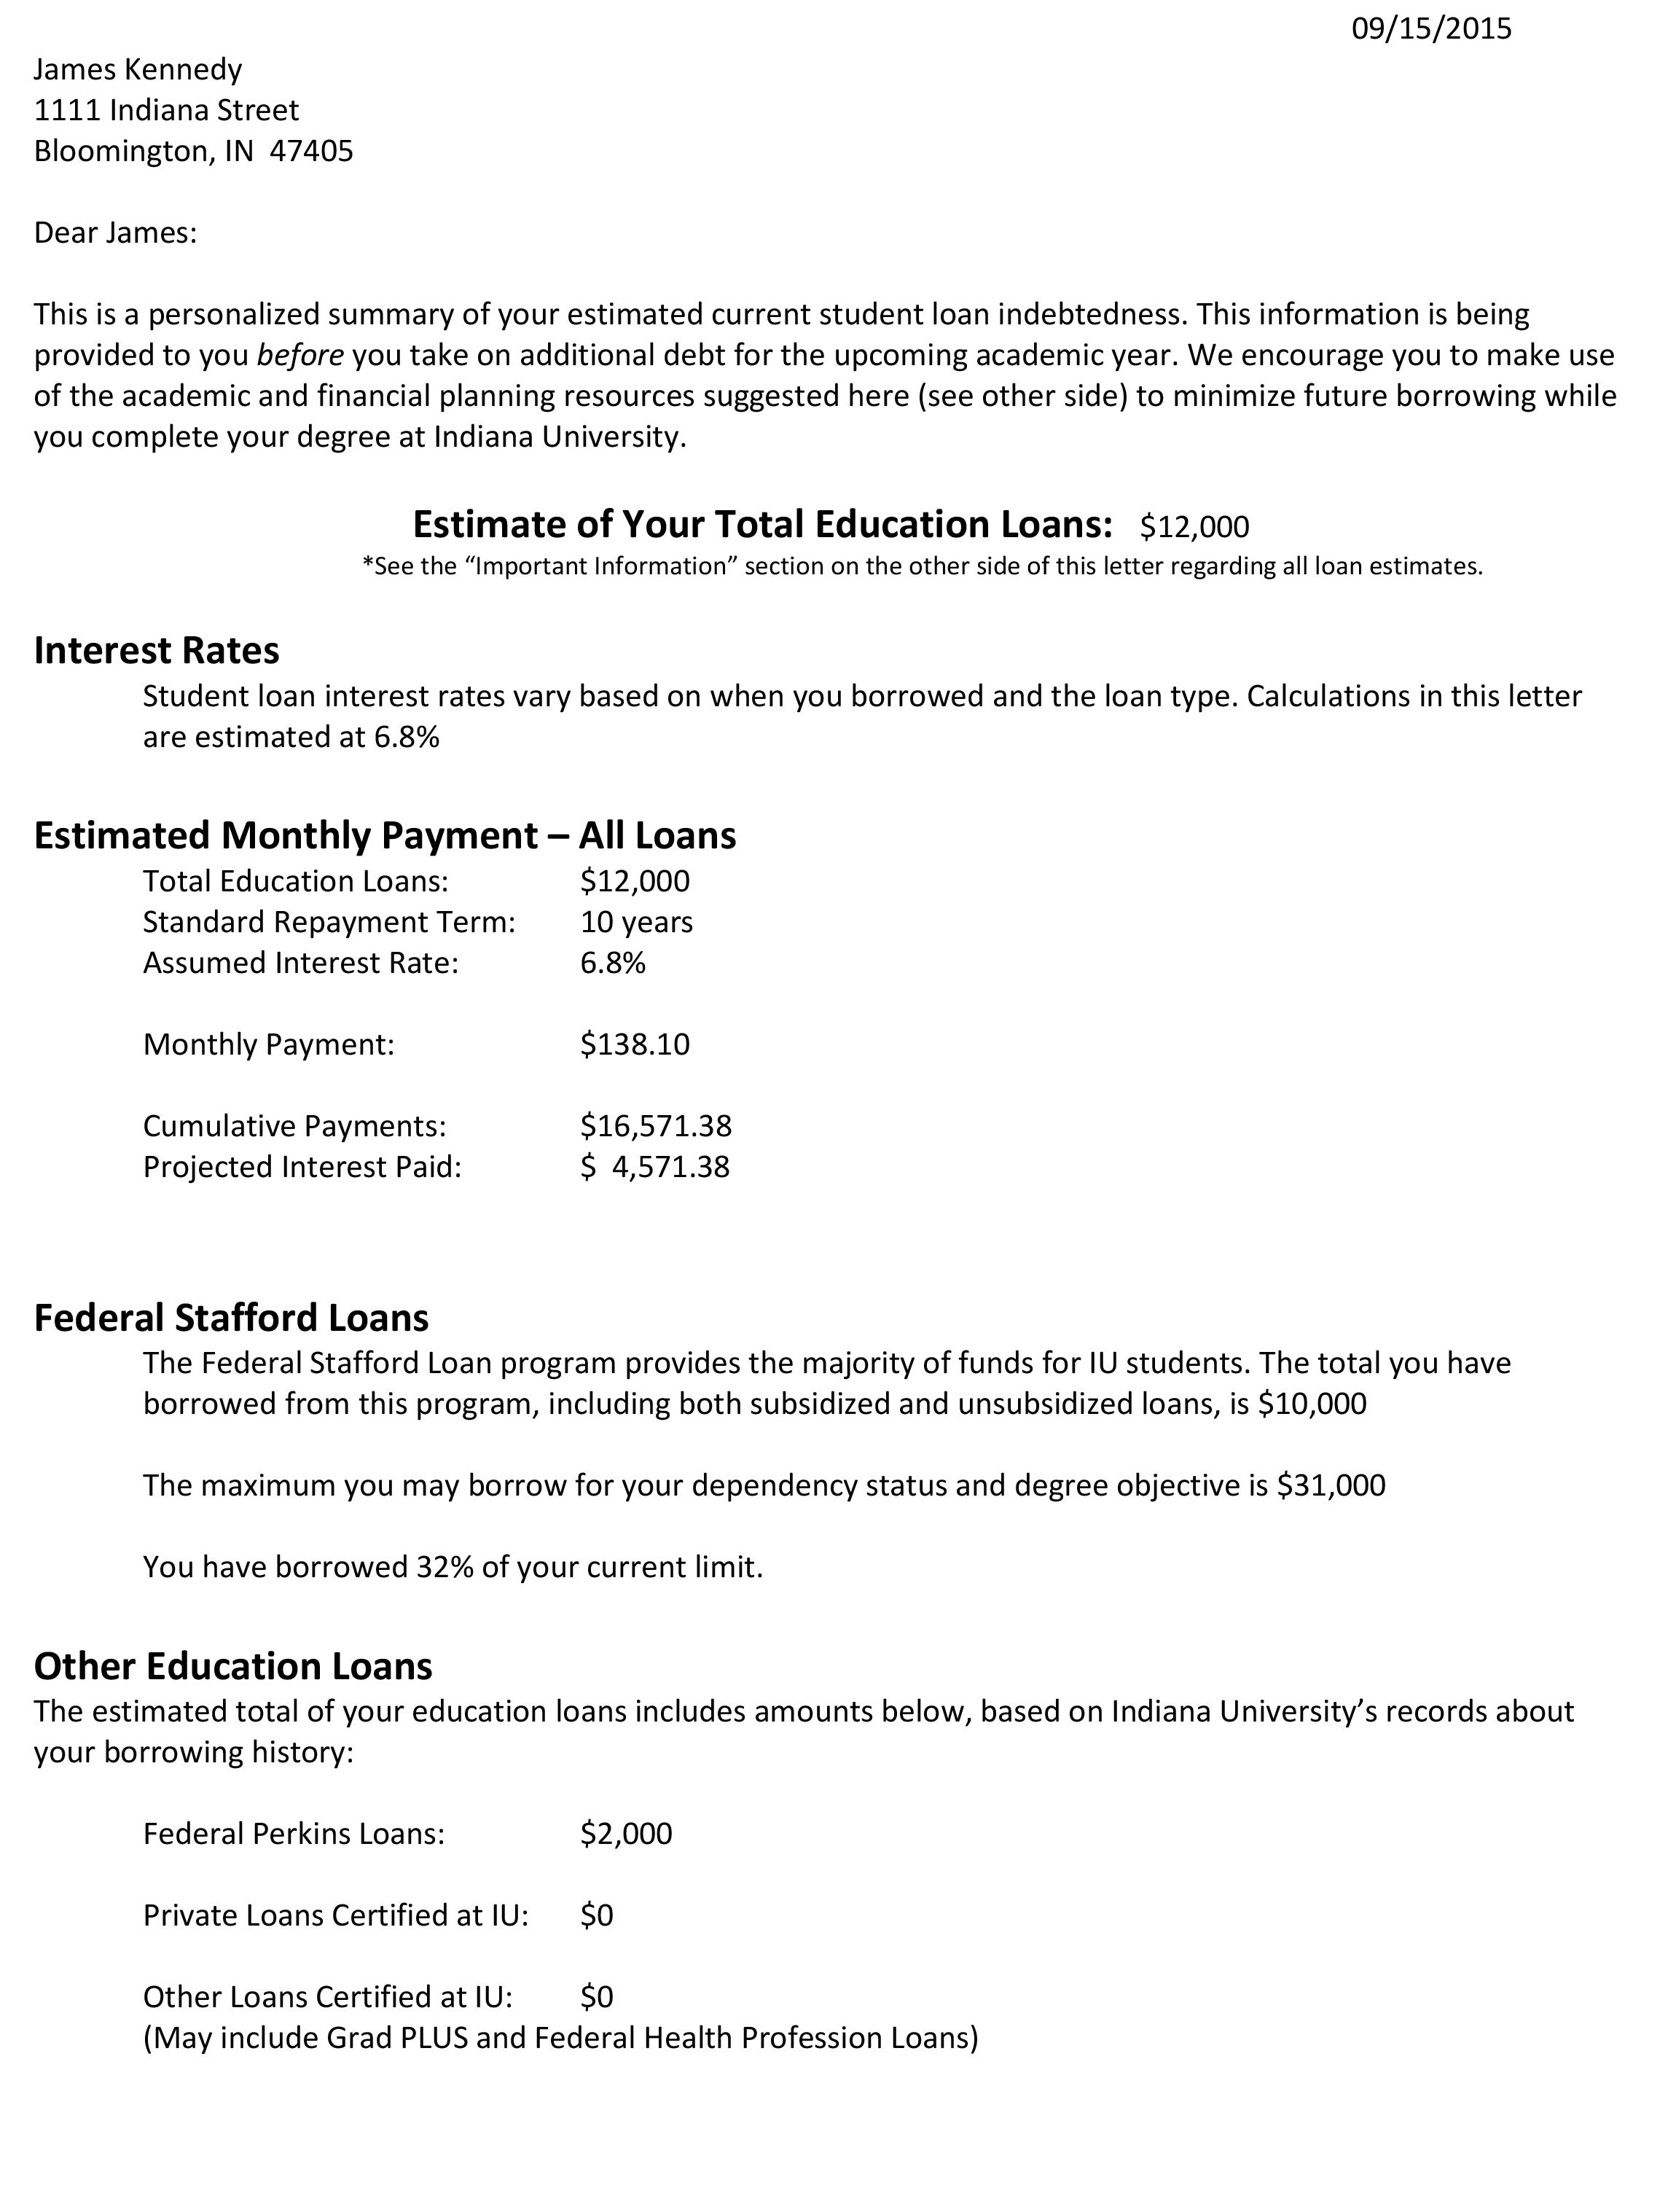 Loan Debt Letter Example 1